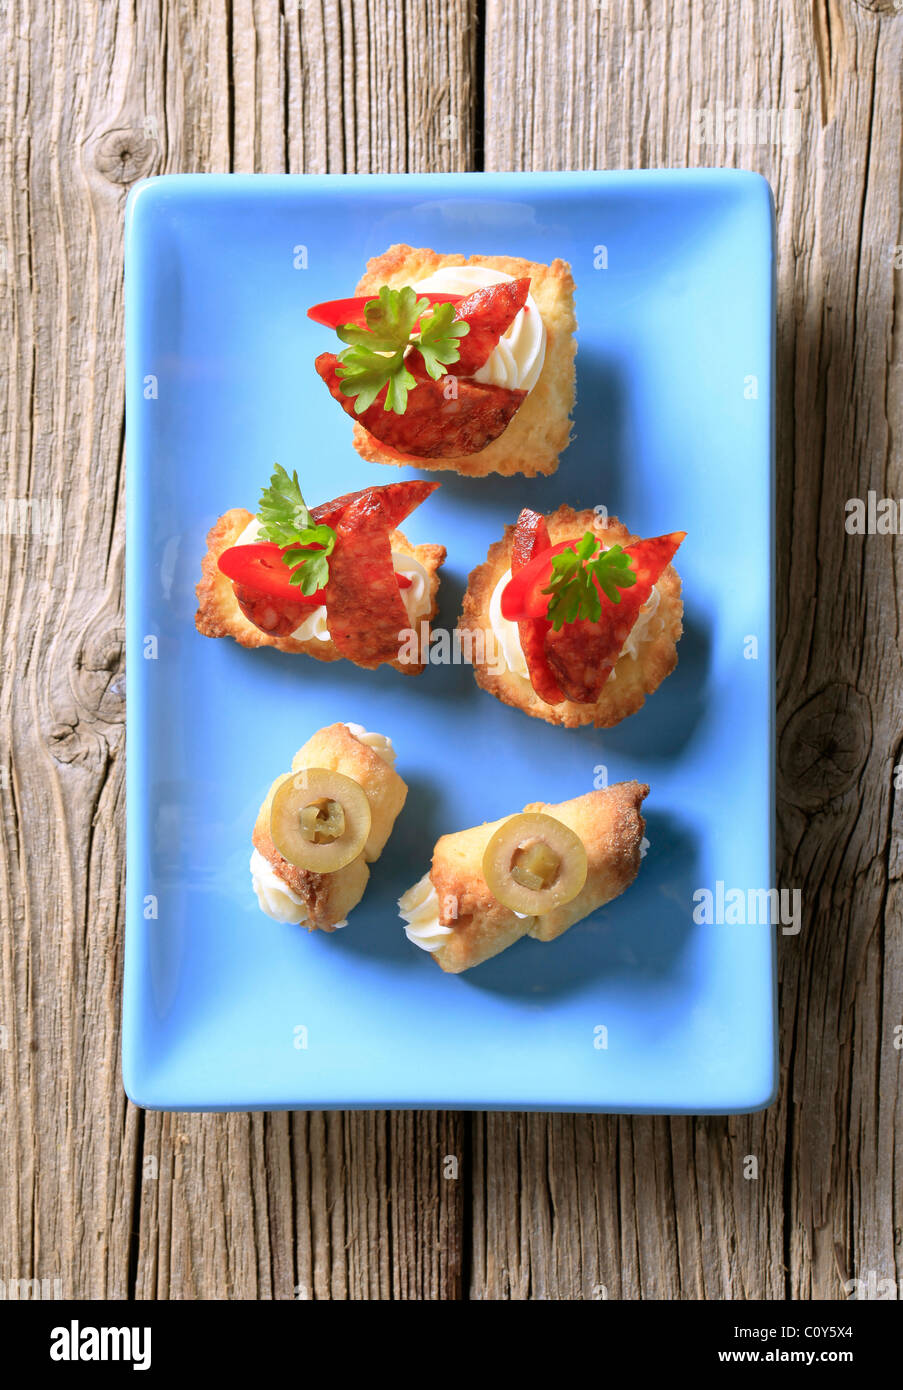 Variety of canapes on a porcelain plate - Stock Image